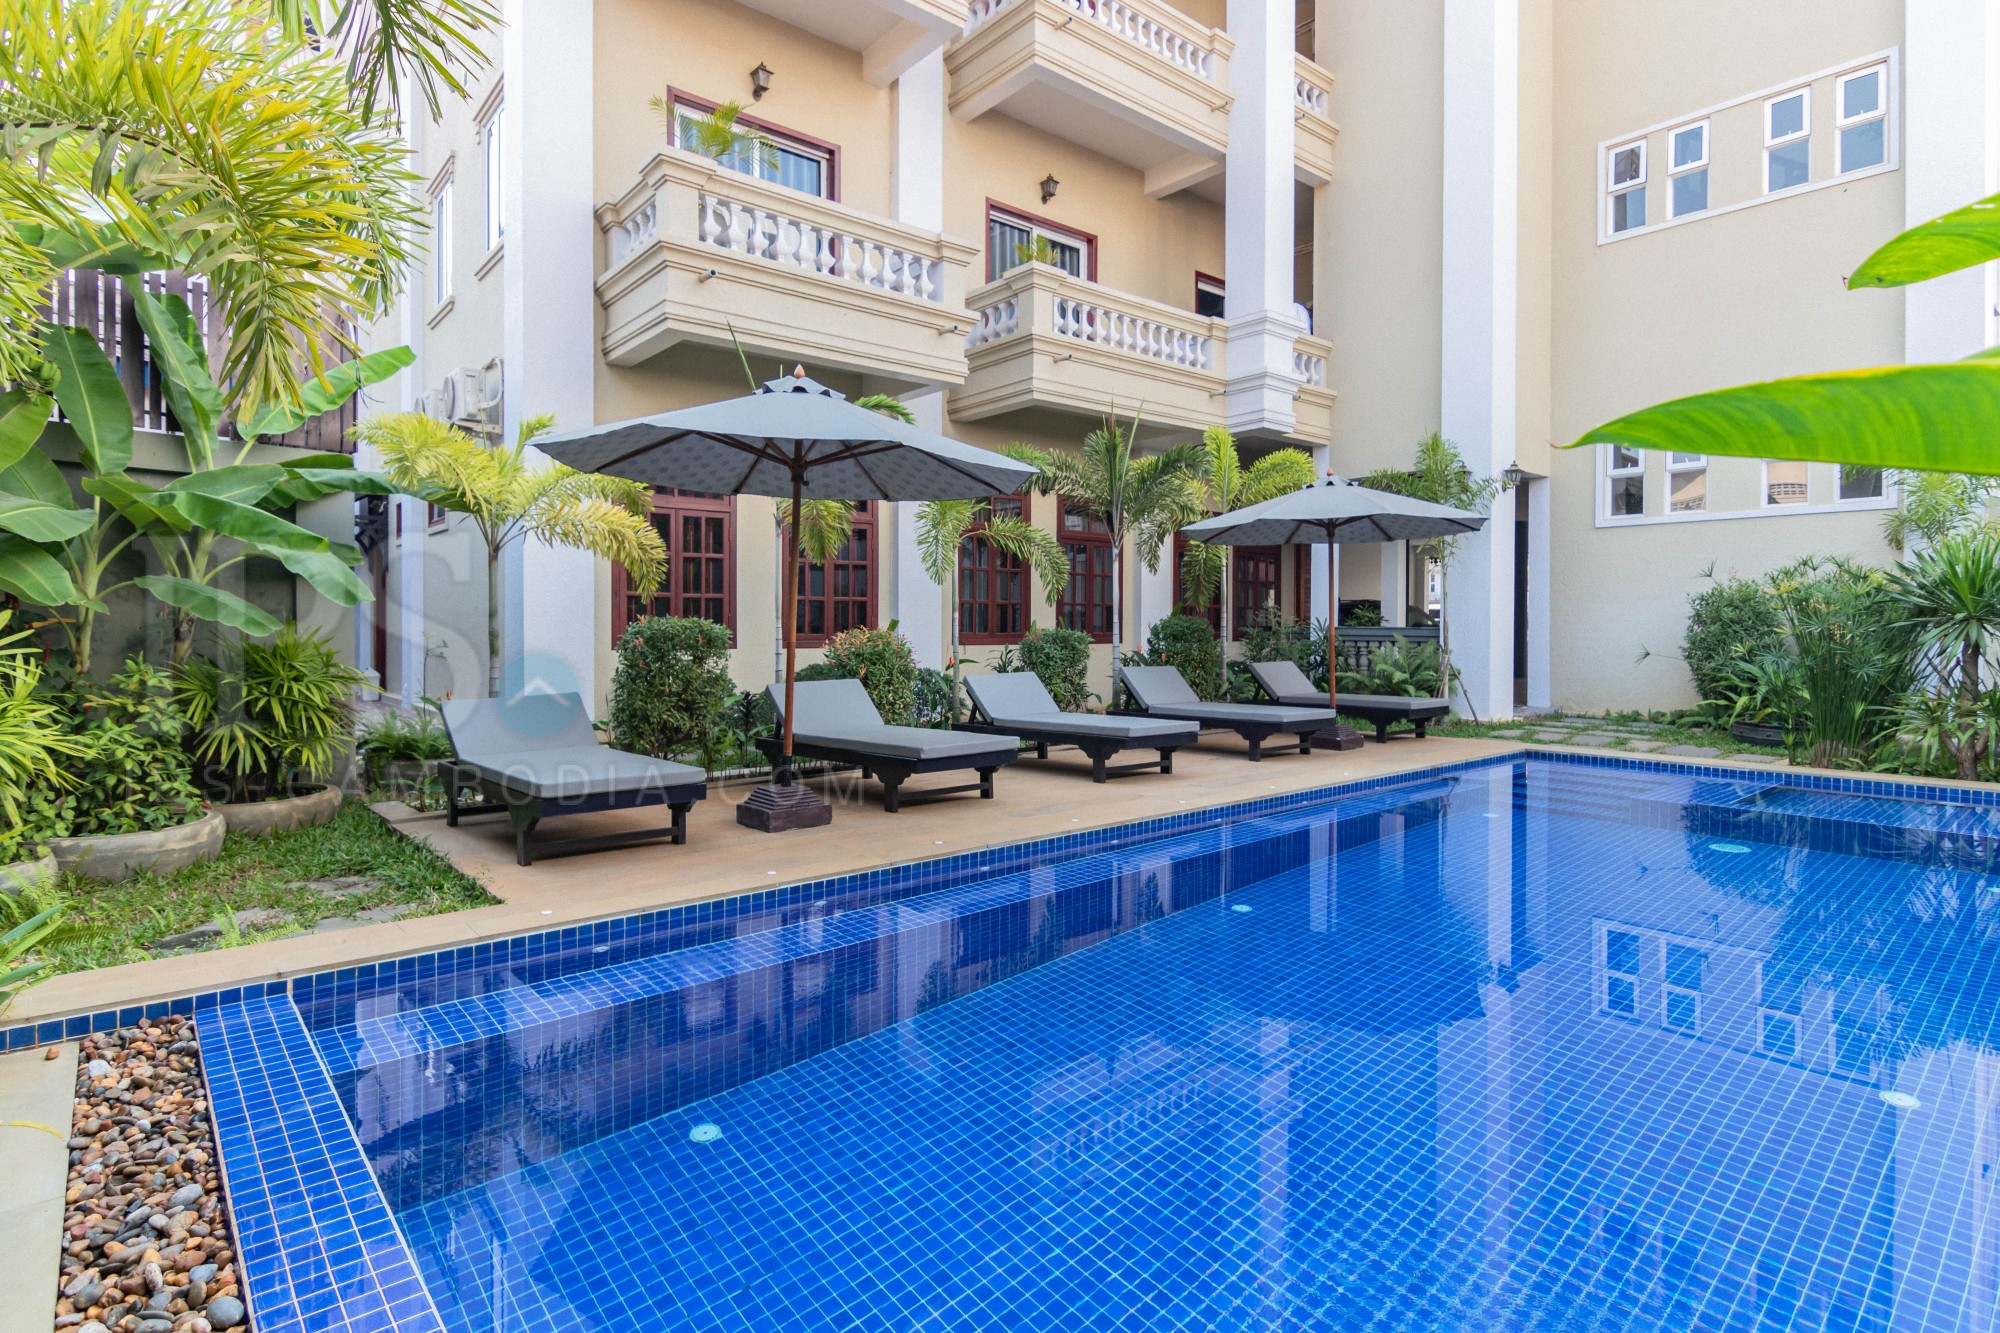 2 Bedroom Apartment For Rent - Svay Dangkum, Siem Reap